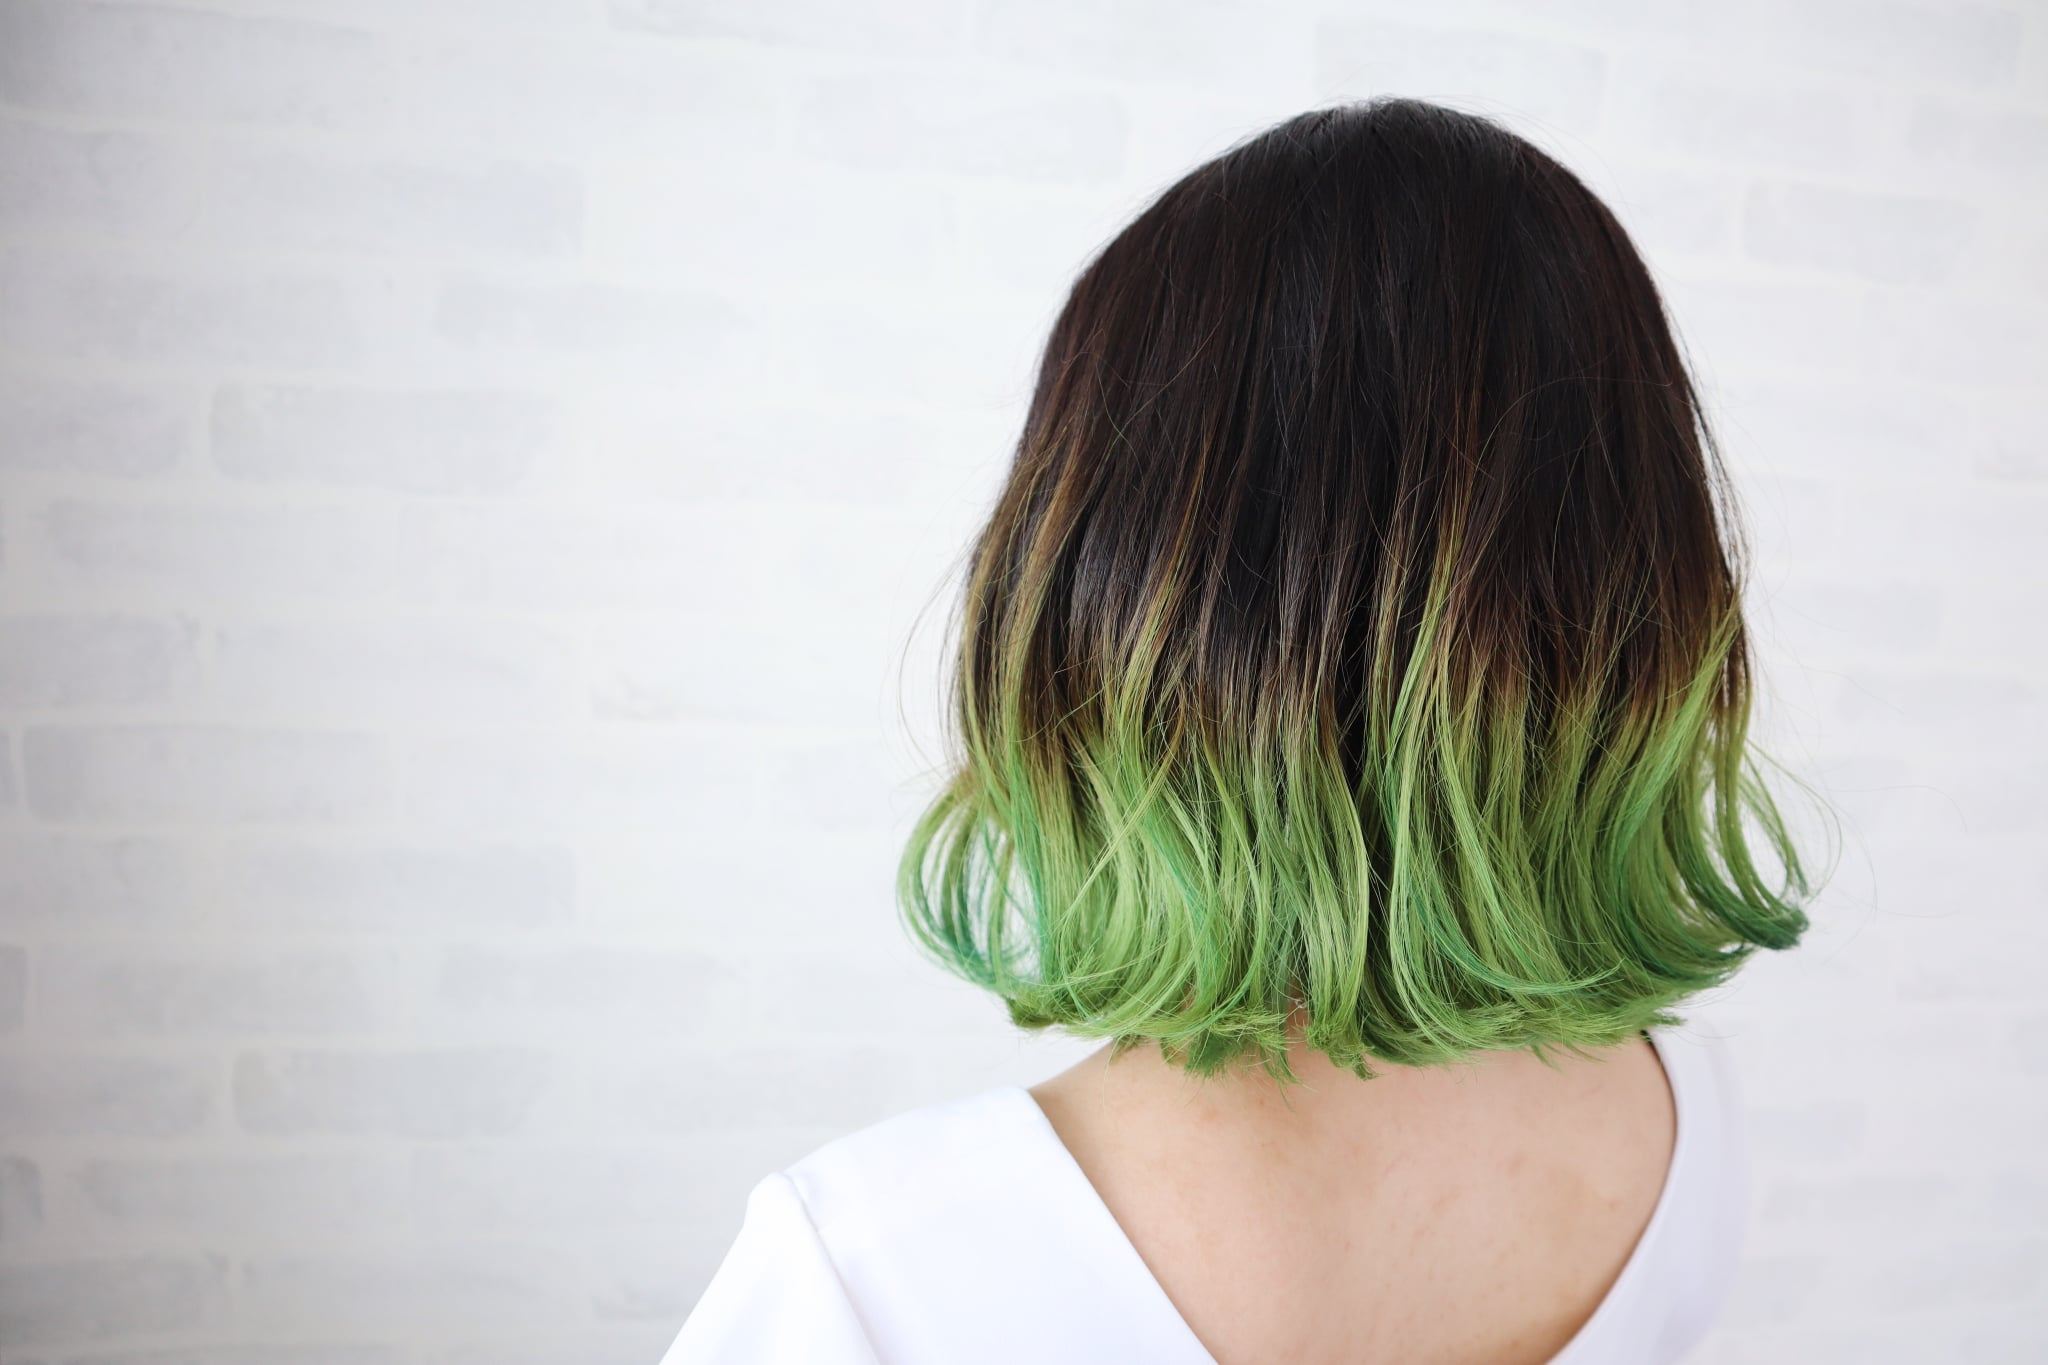 How To Fix Your Quarantine Haircut And Color Mistakes Popsugar Beauty Middle East